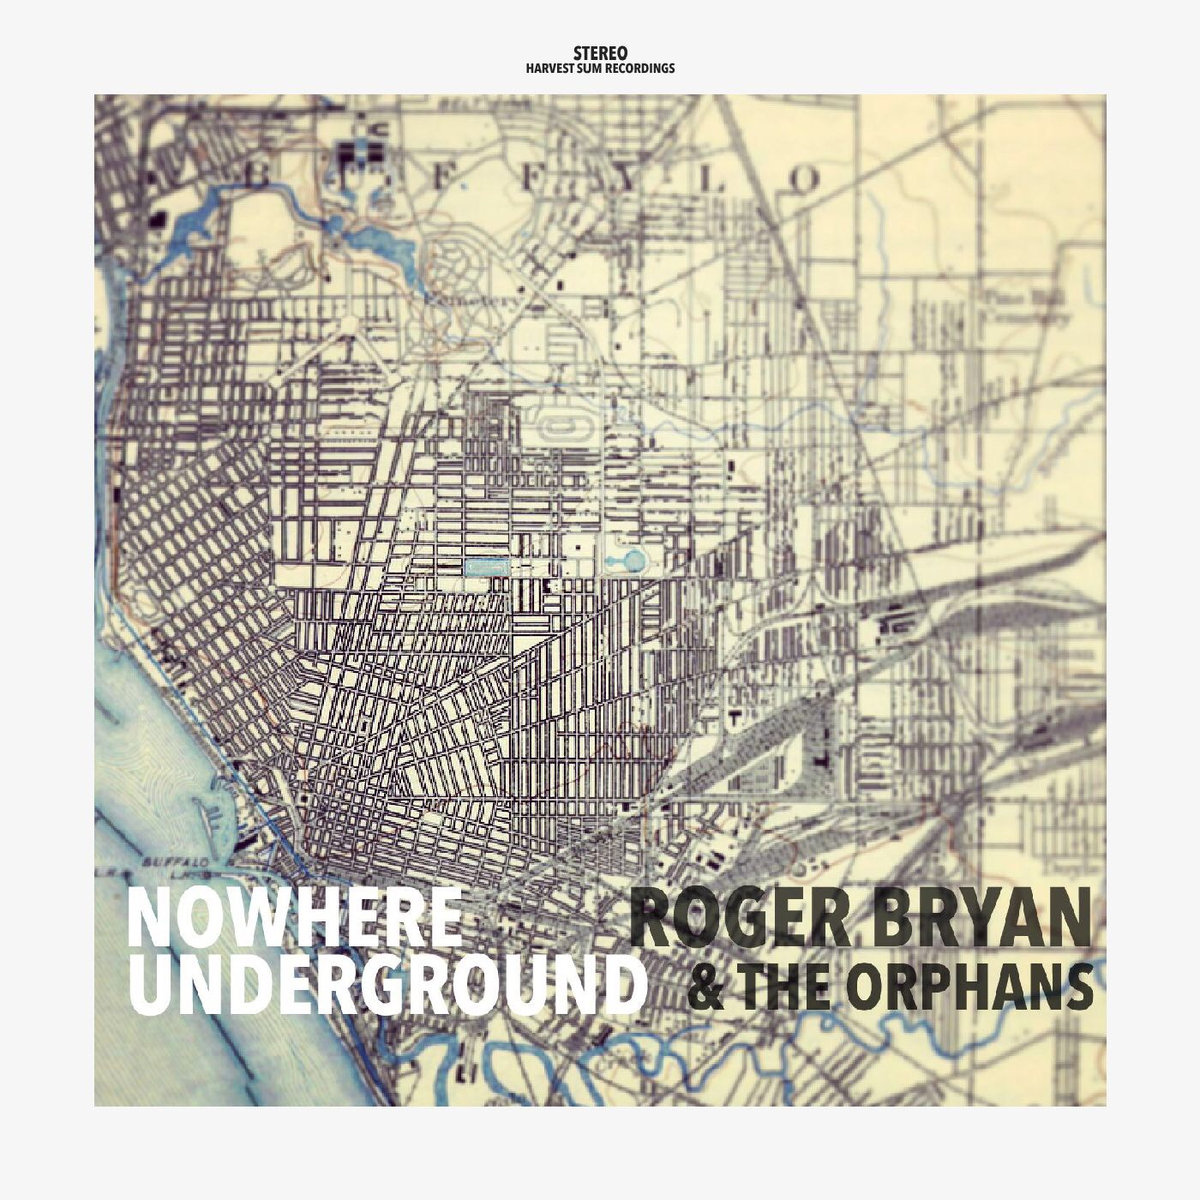 Roger Bryan and The Orphans Release New Single